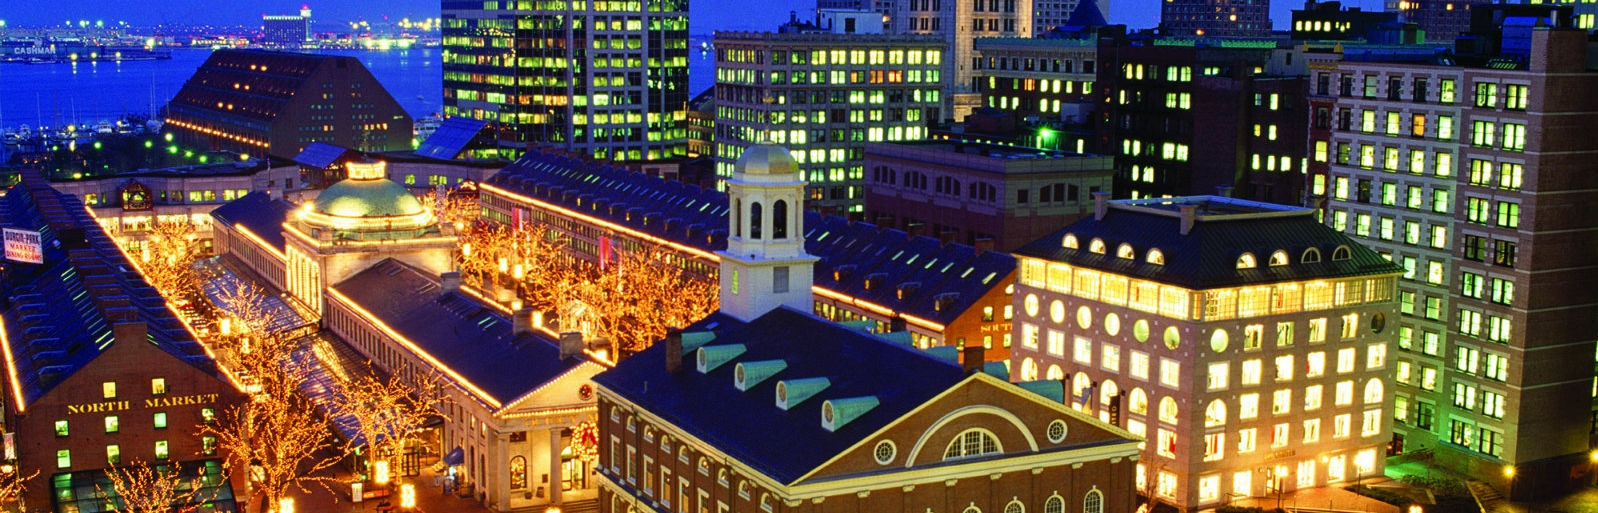 Hotels near Faneuil Hall Marketplace